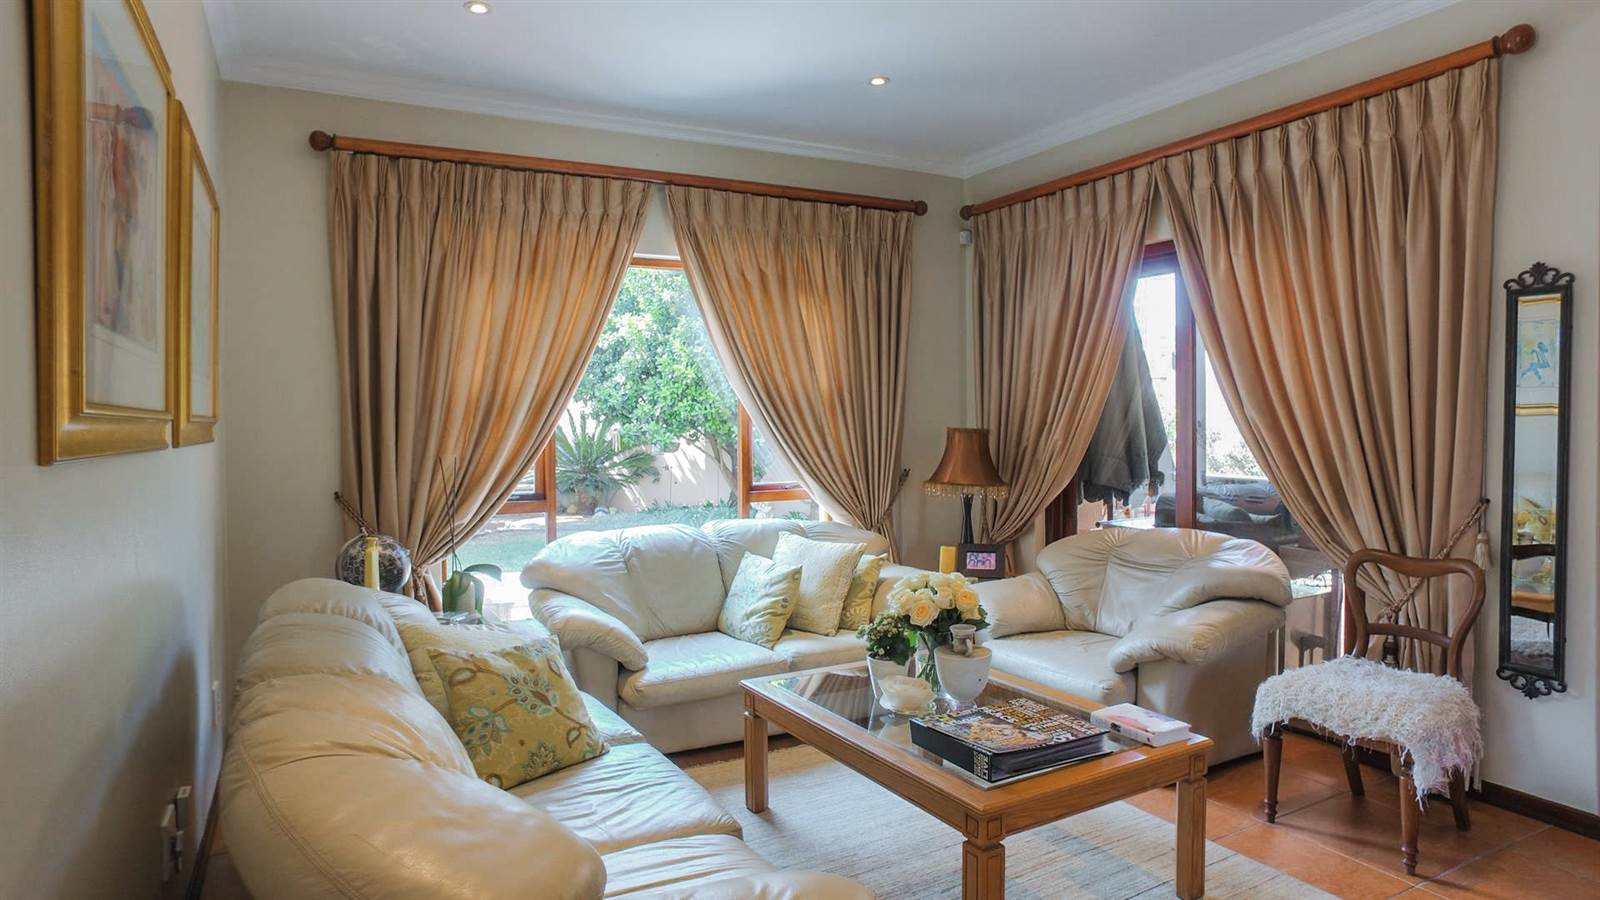 4 Bedroom Townhouse for sale in Mulbarton ENT0067436 : photo#2